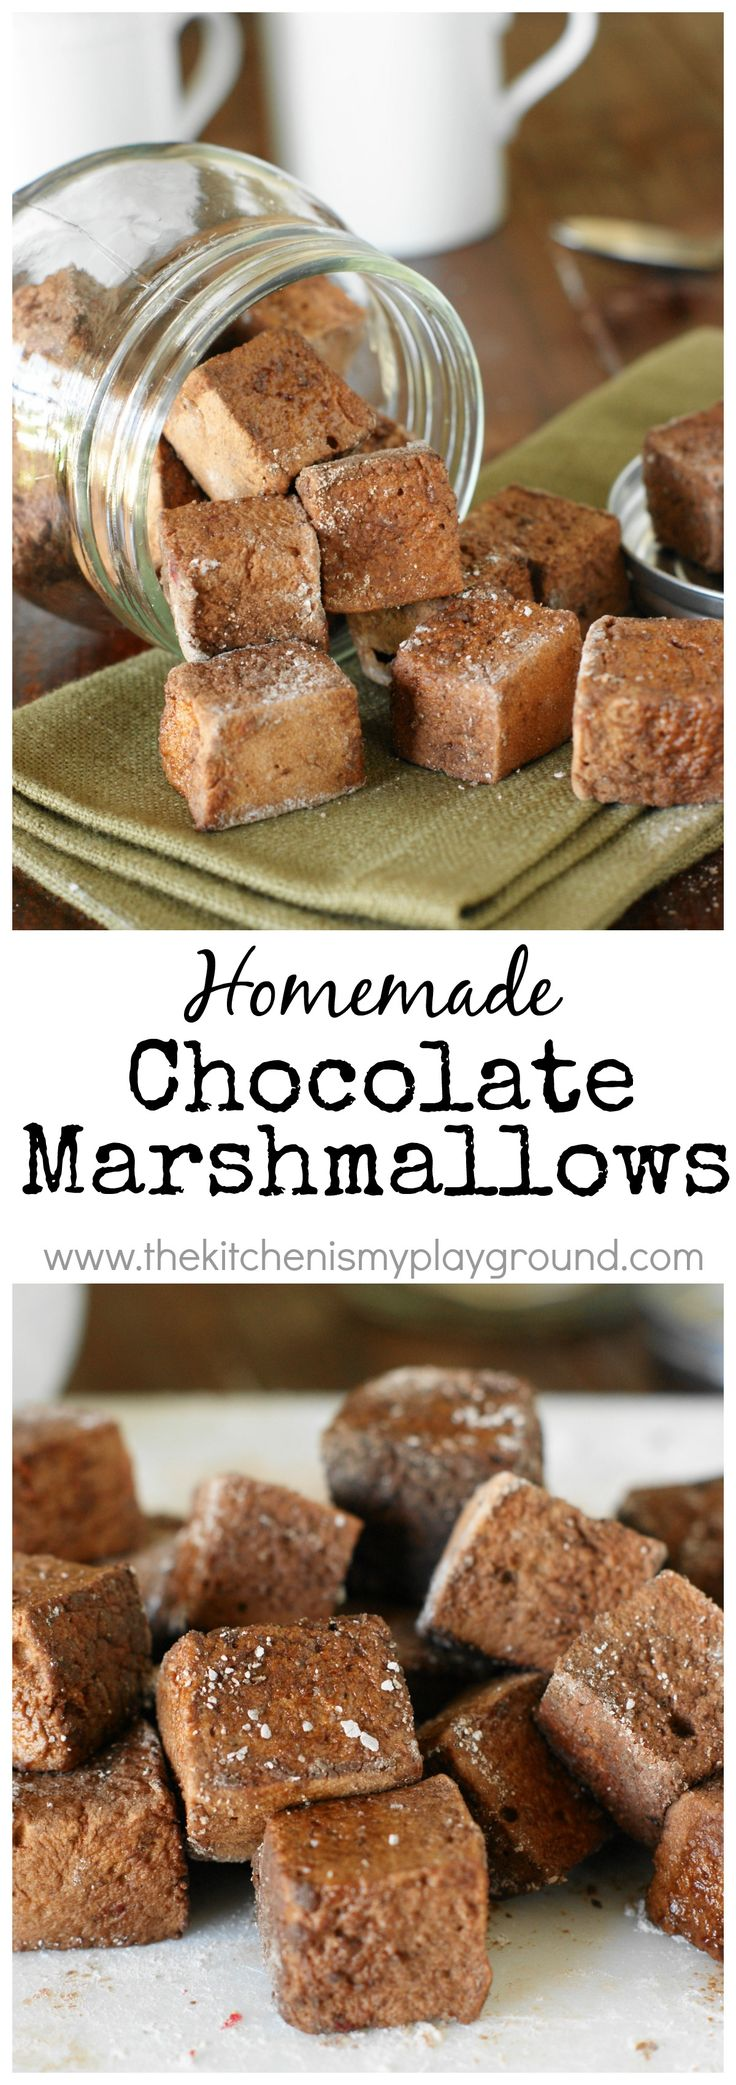 Homemade Chocolate Marshmallows ~ little pillows of chocolate marshmallow deliciousness. Enjoy in a mugful of hot chocolate, or just as they are for a sweet treat snack. #chocolate #marshmallows #homemademarshmallows www.thekitchenismyplayground.com